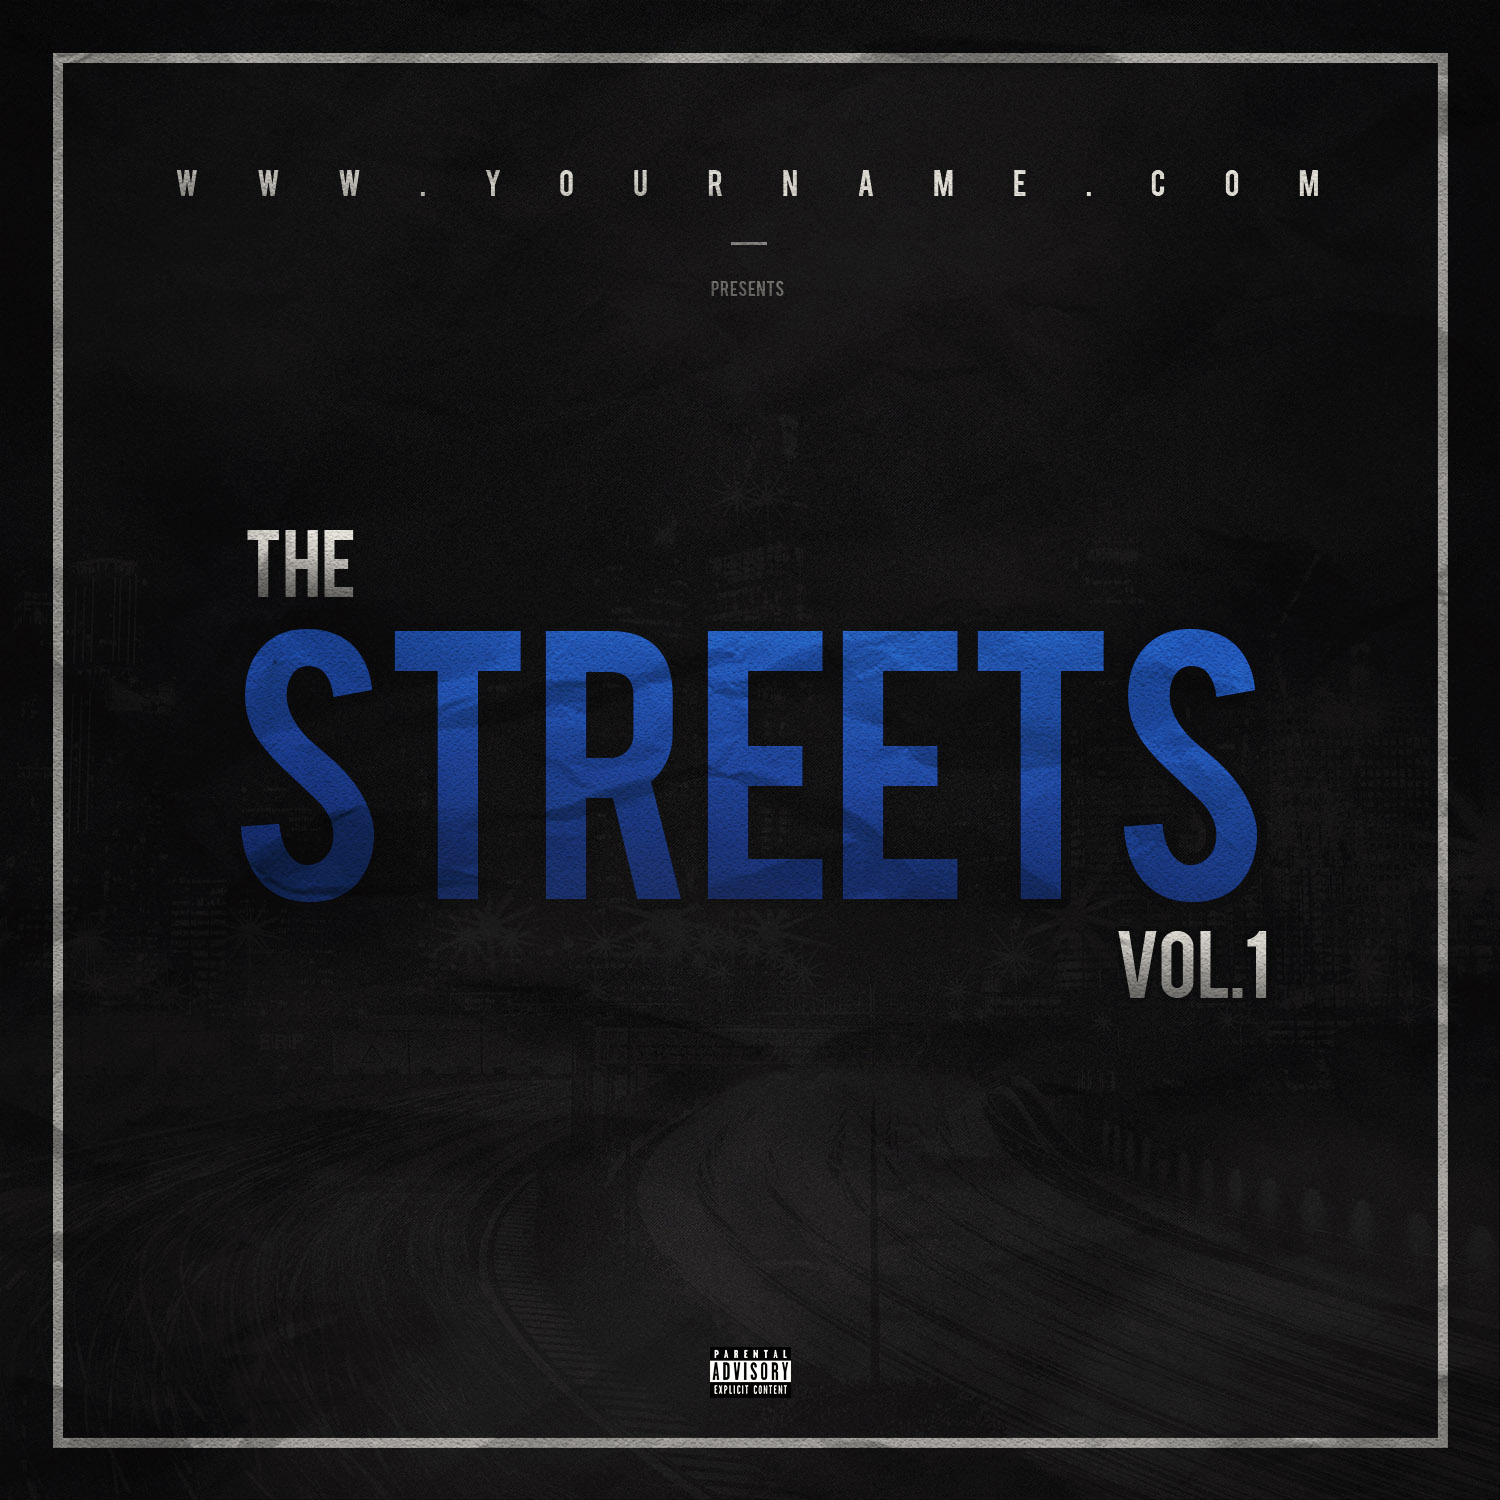 Street mixtape cover template vms for Free mixtape covers templates